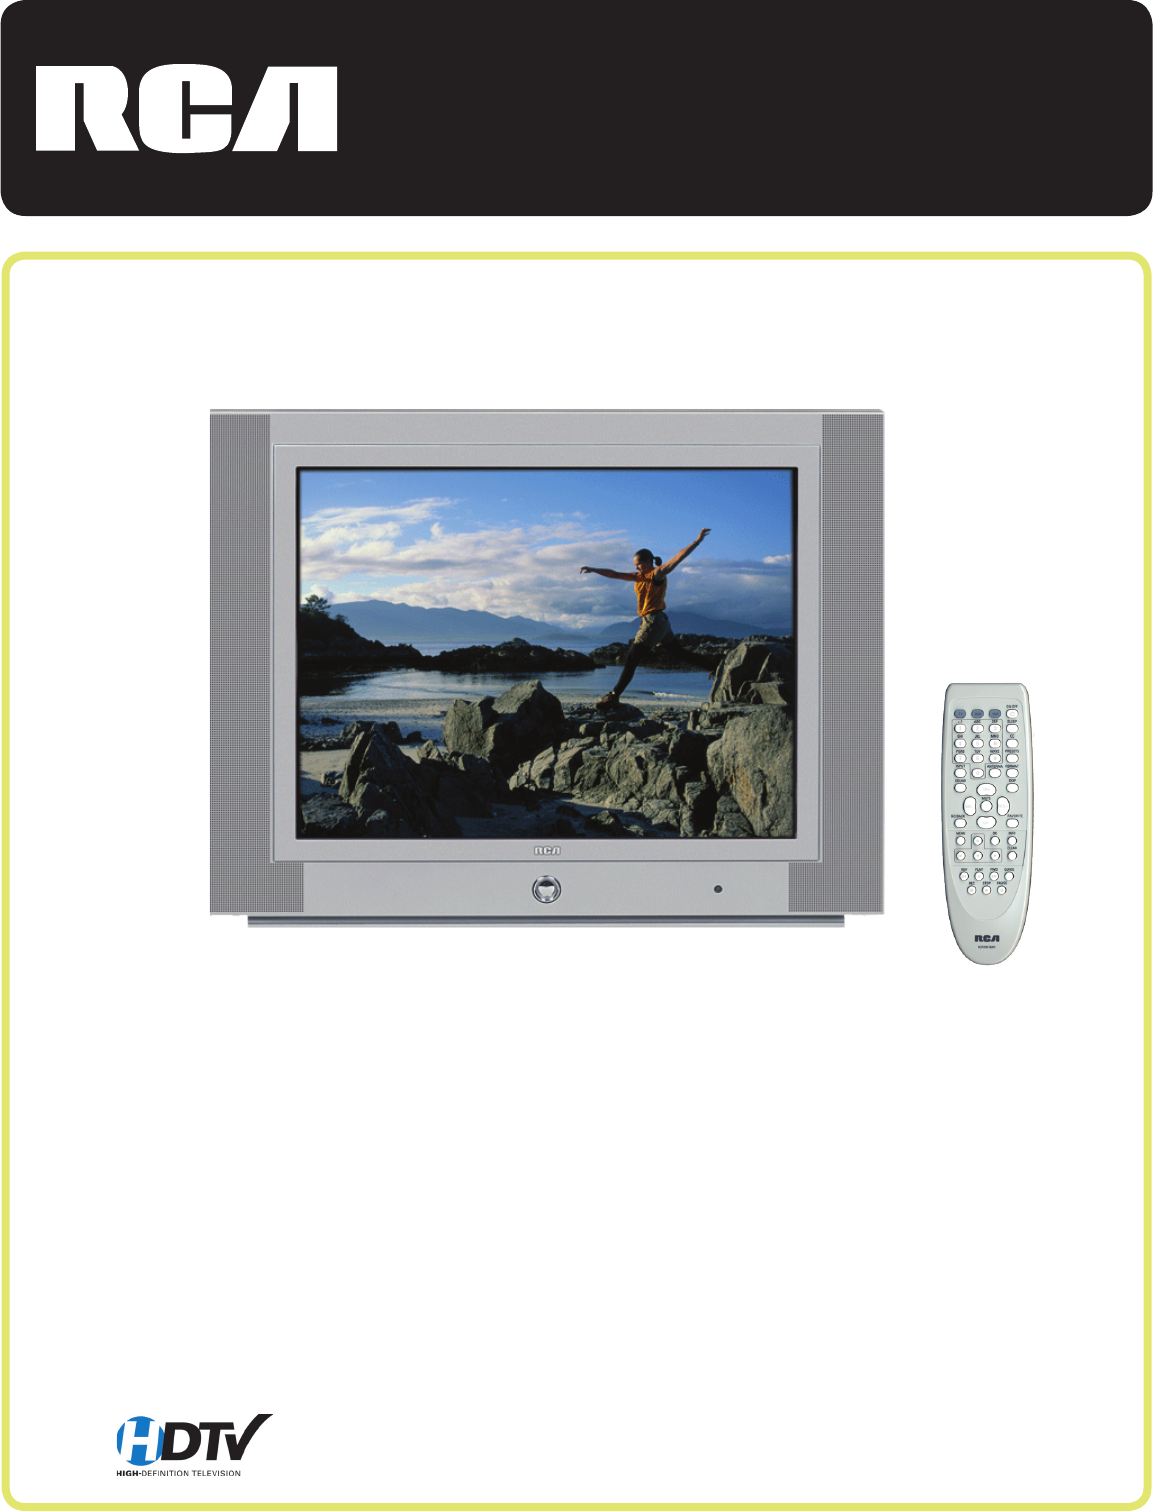 rca flat panel television hd30w854t user guide